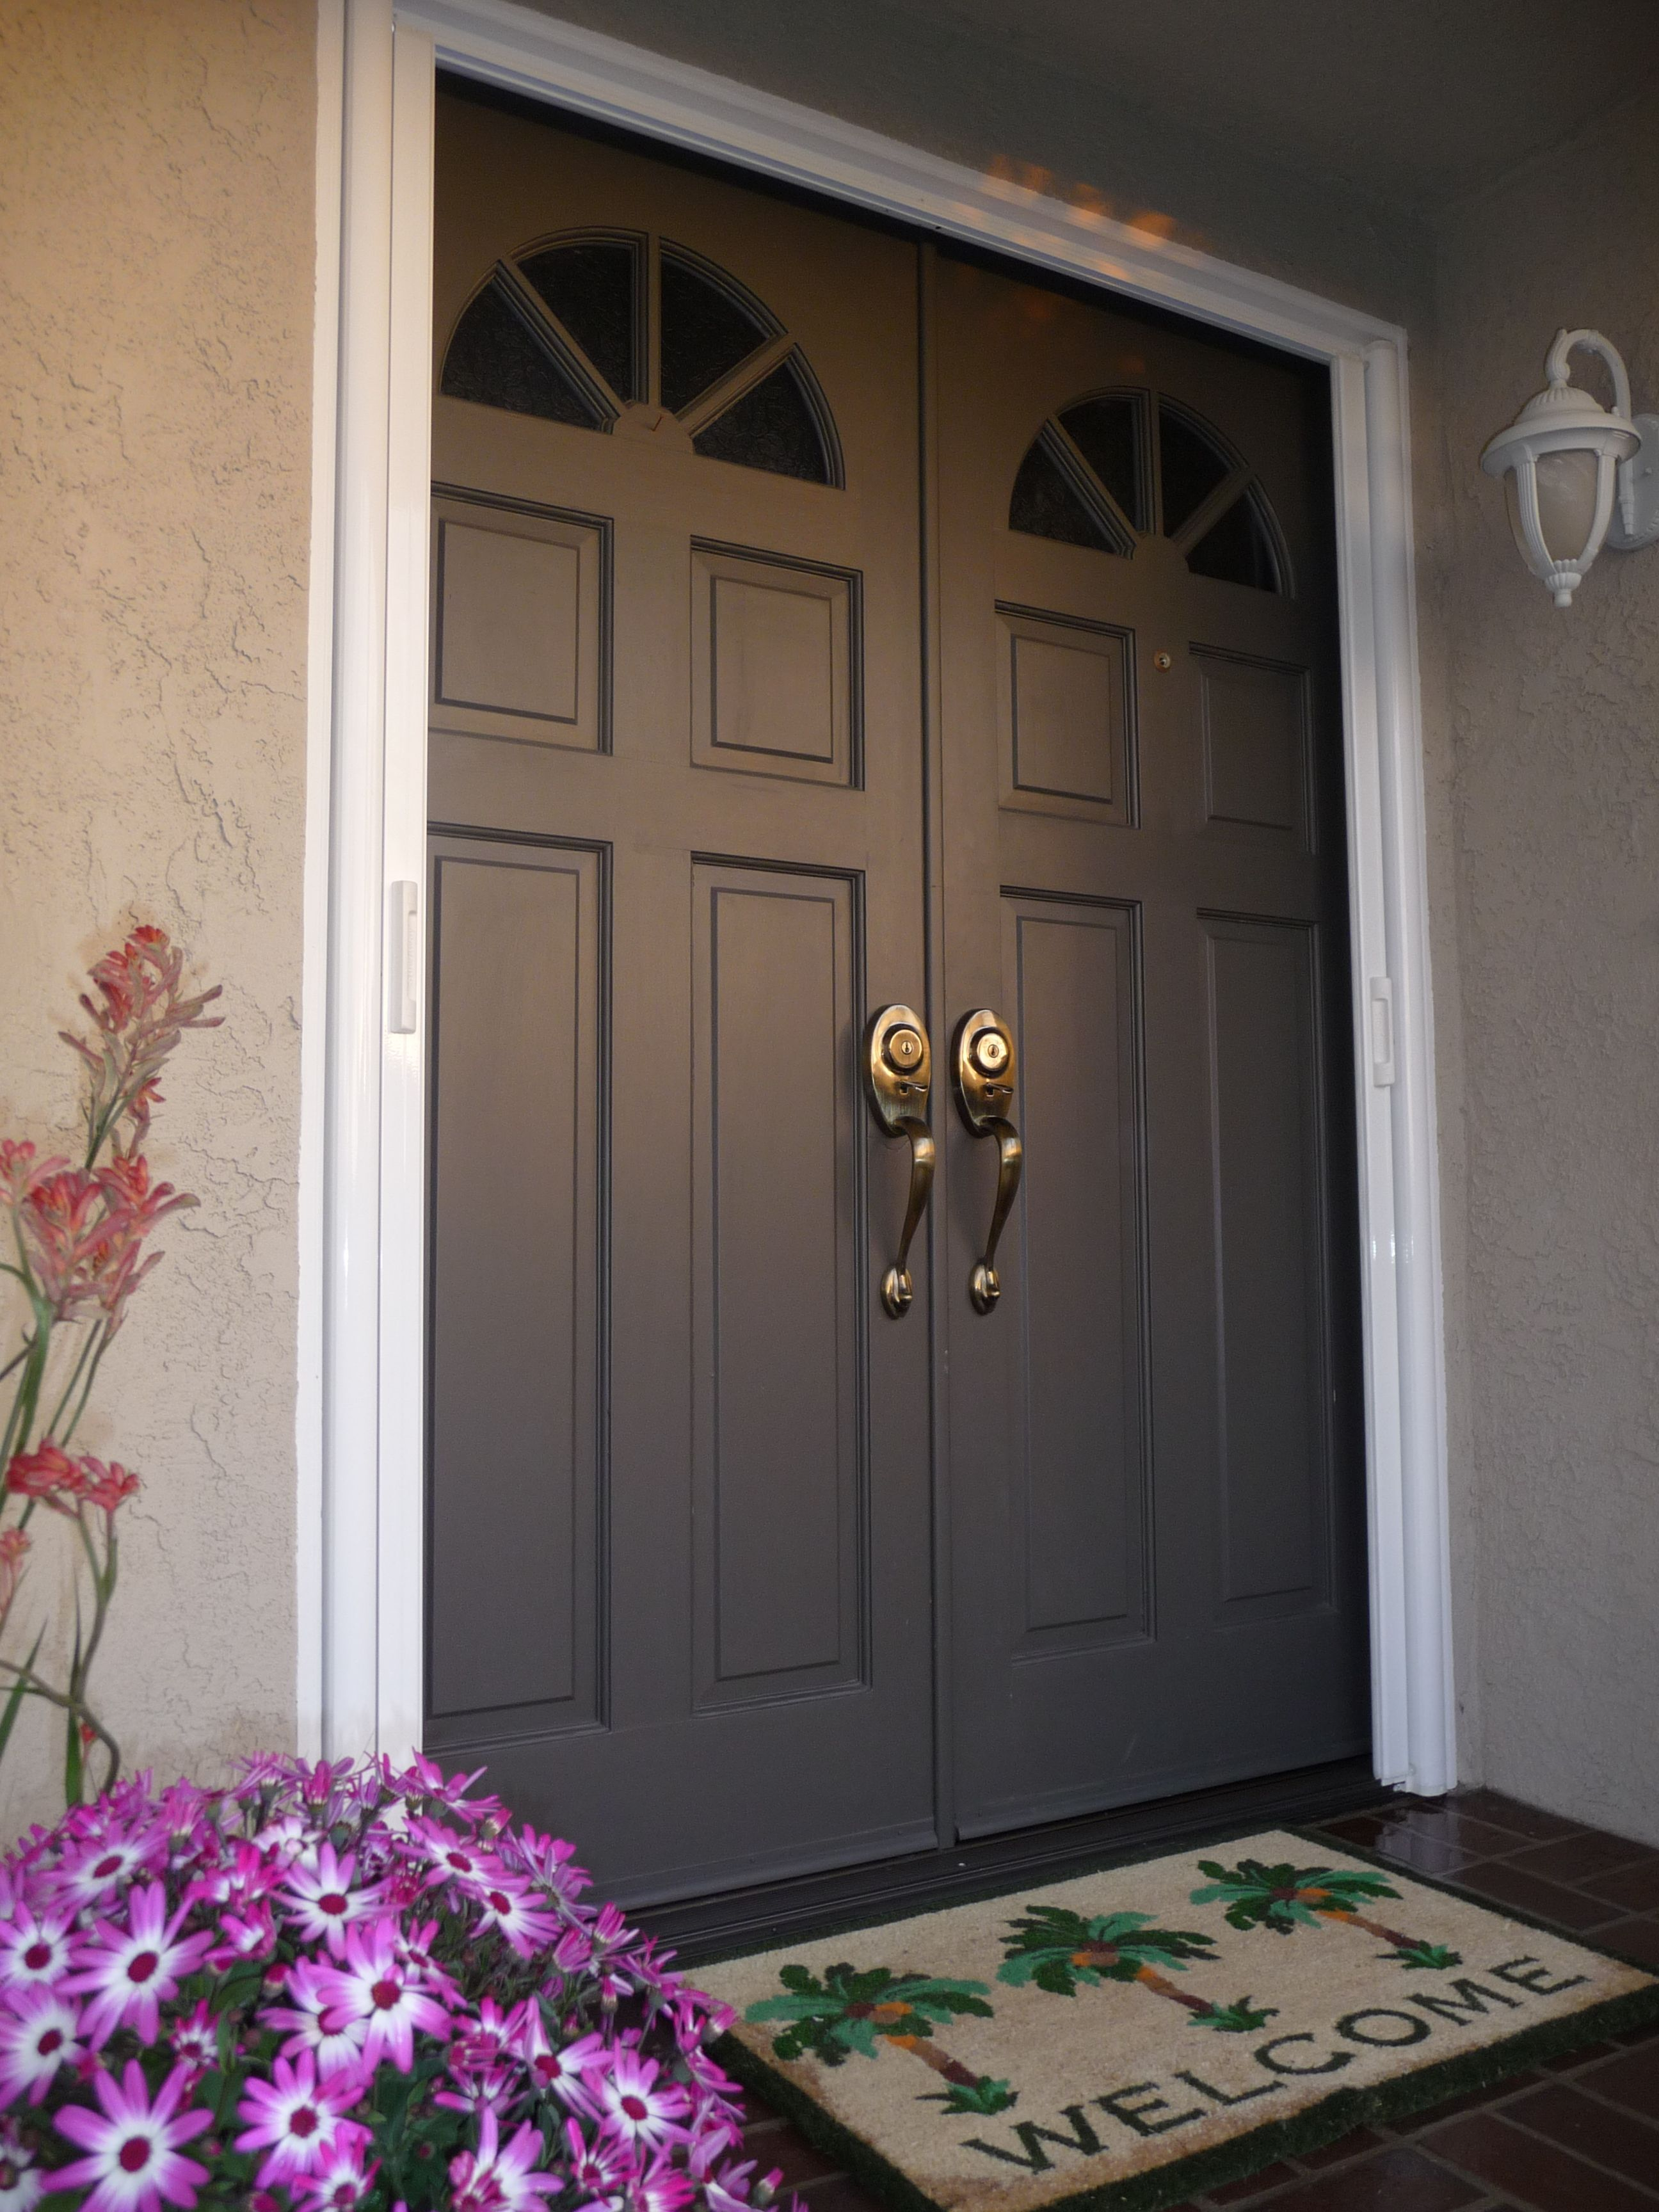 Exterior front doors double - Double Exterior Doors Exterior Doors Luxury With Regard To Front Double Door Decorating Ideas For Your